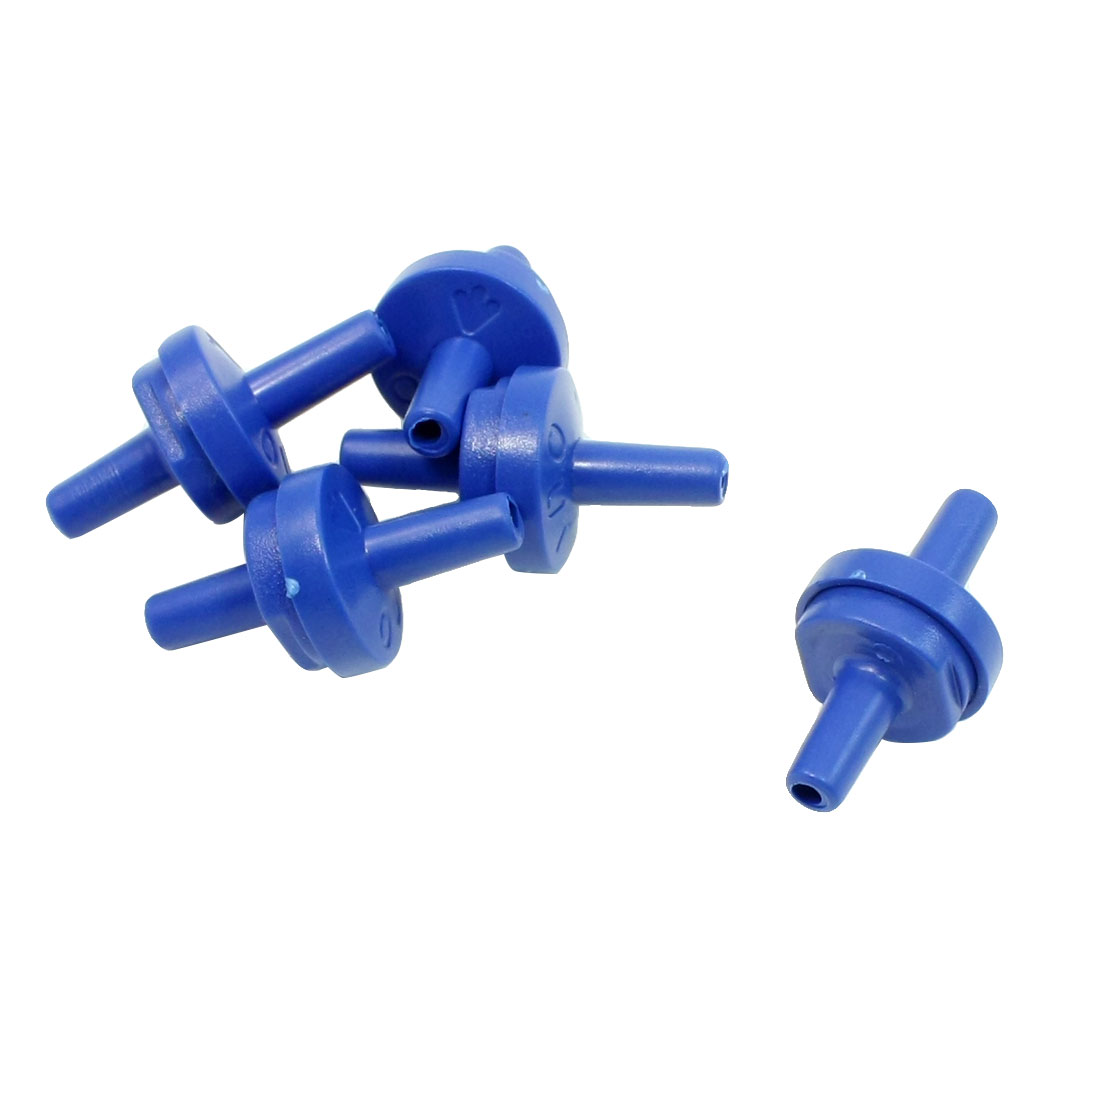 5 Pcs Blue Plastic Check Valves for Fish Tank Aquarium Air Pump